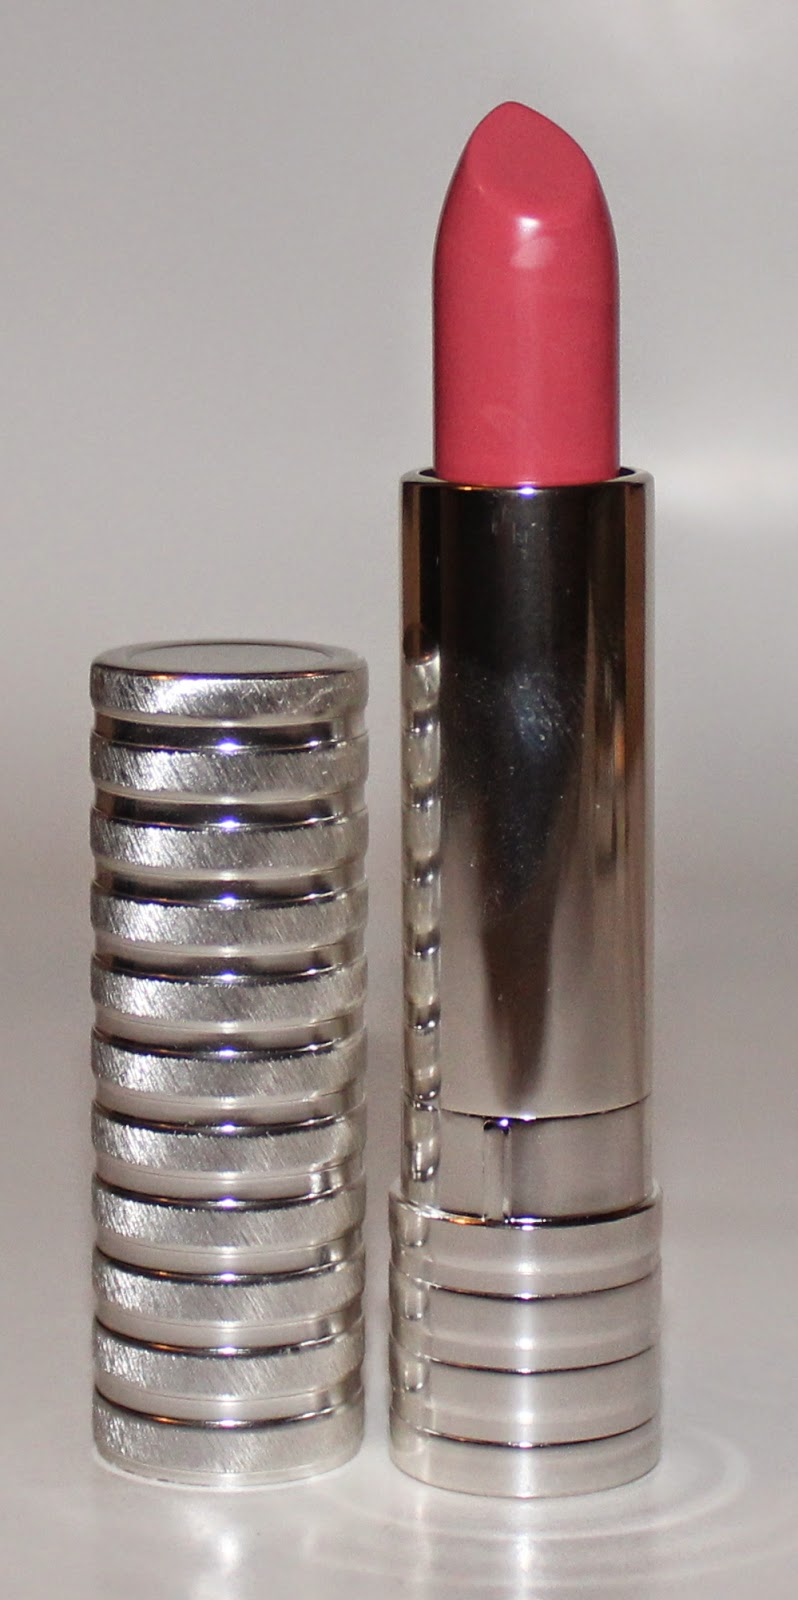 Clinique Long Last Soft Matte Lipstick Beauty